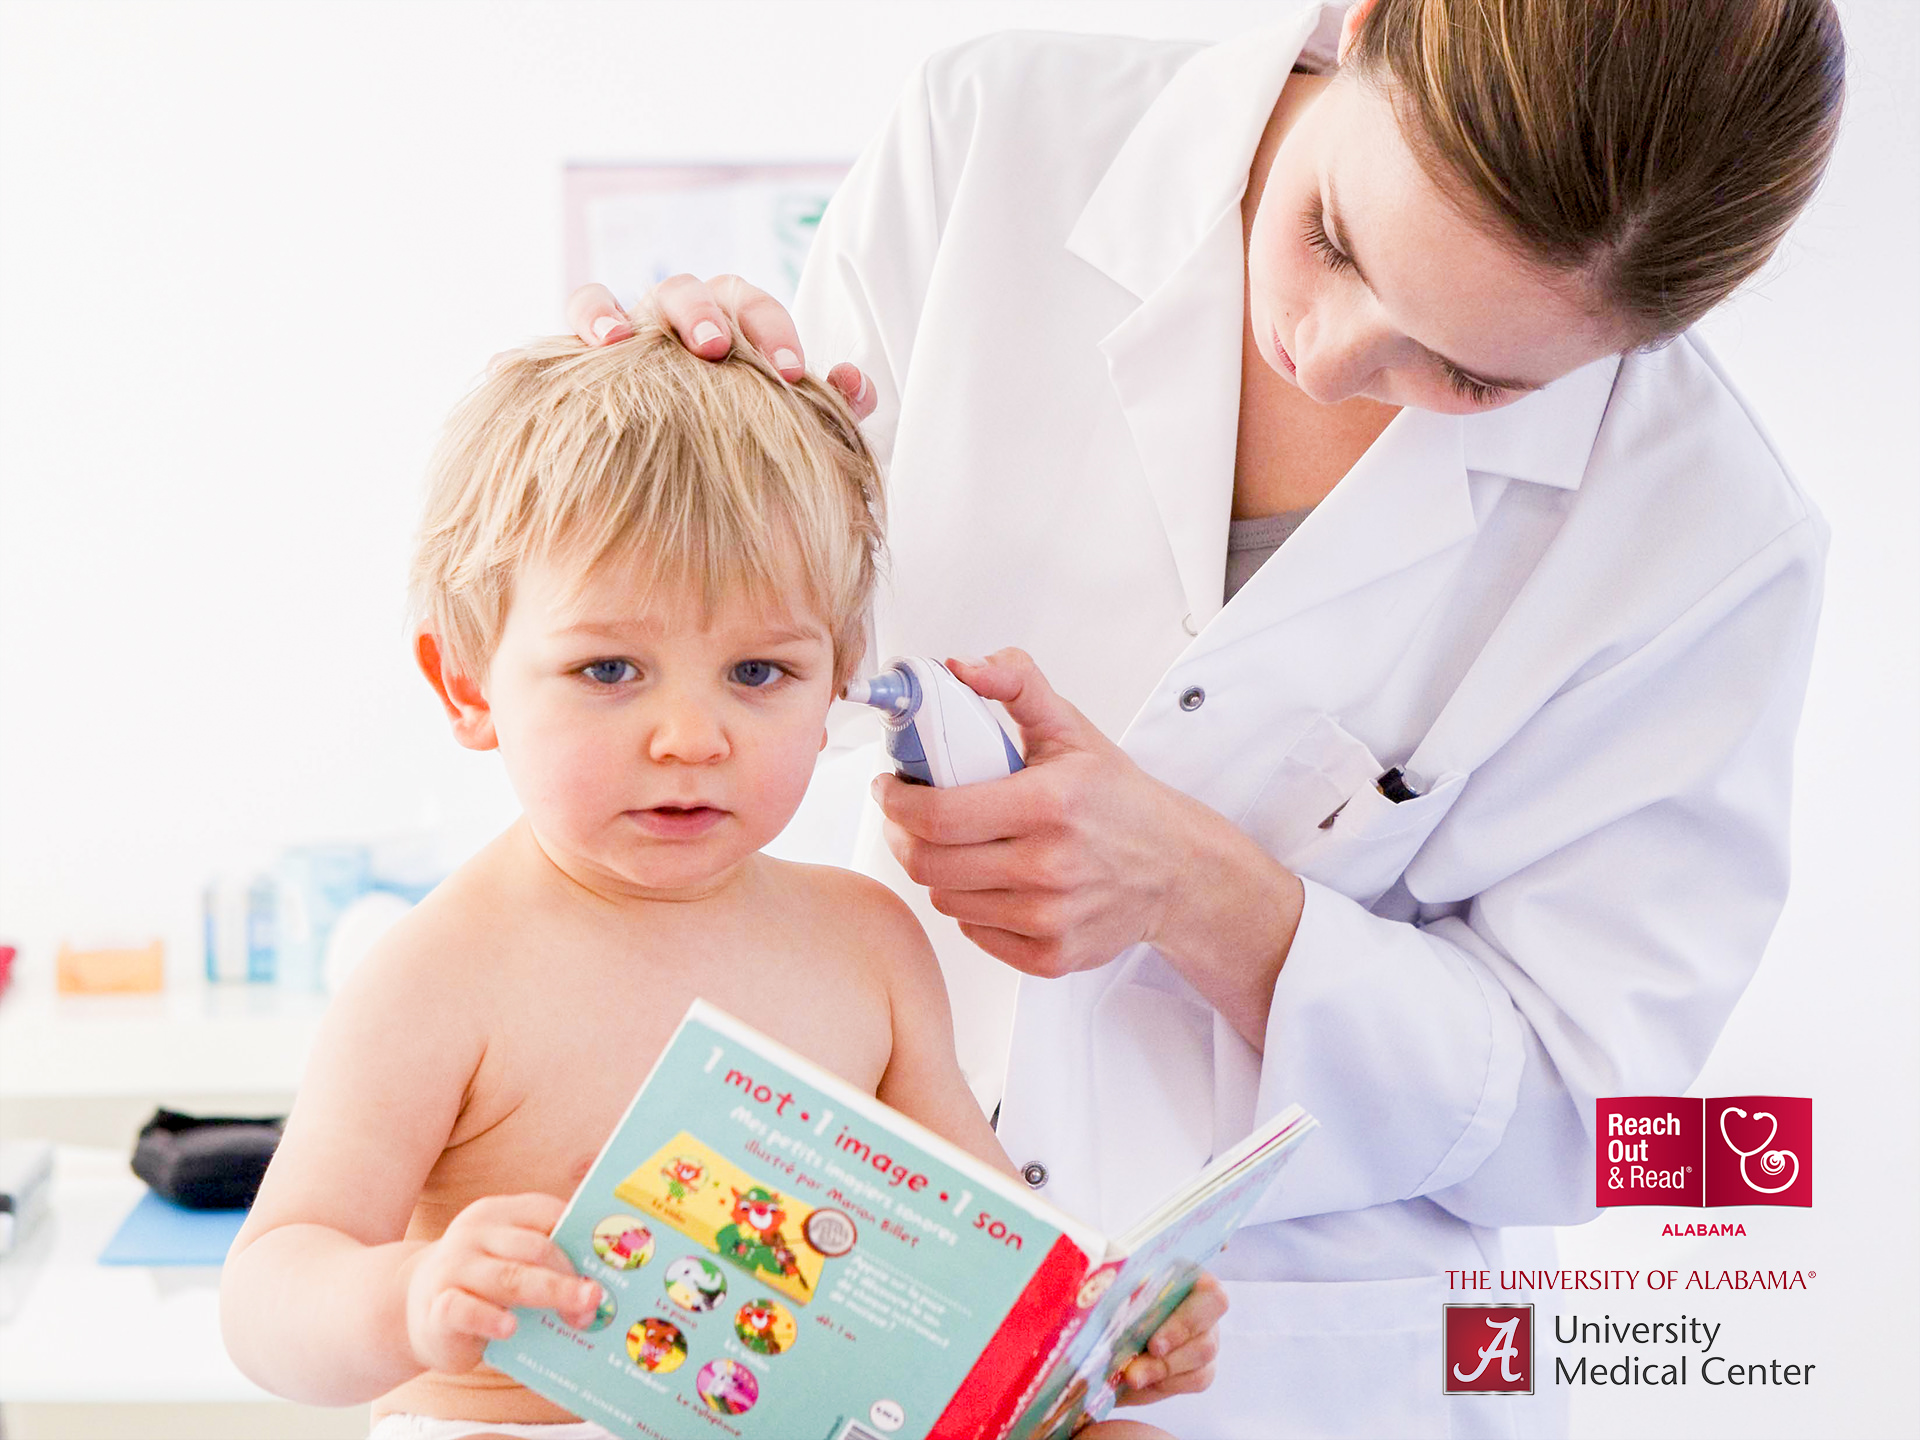 Child reading book while being examined by doctor